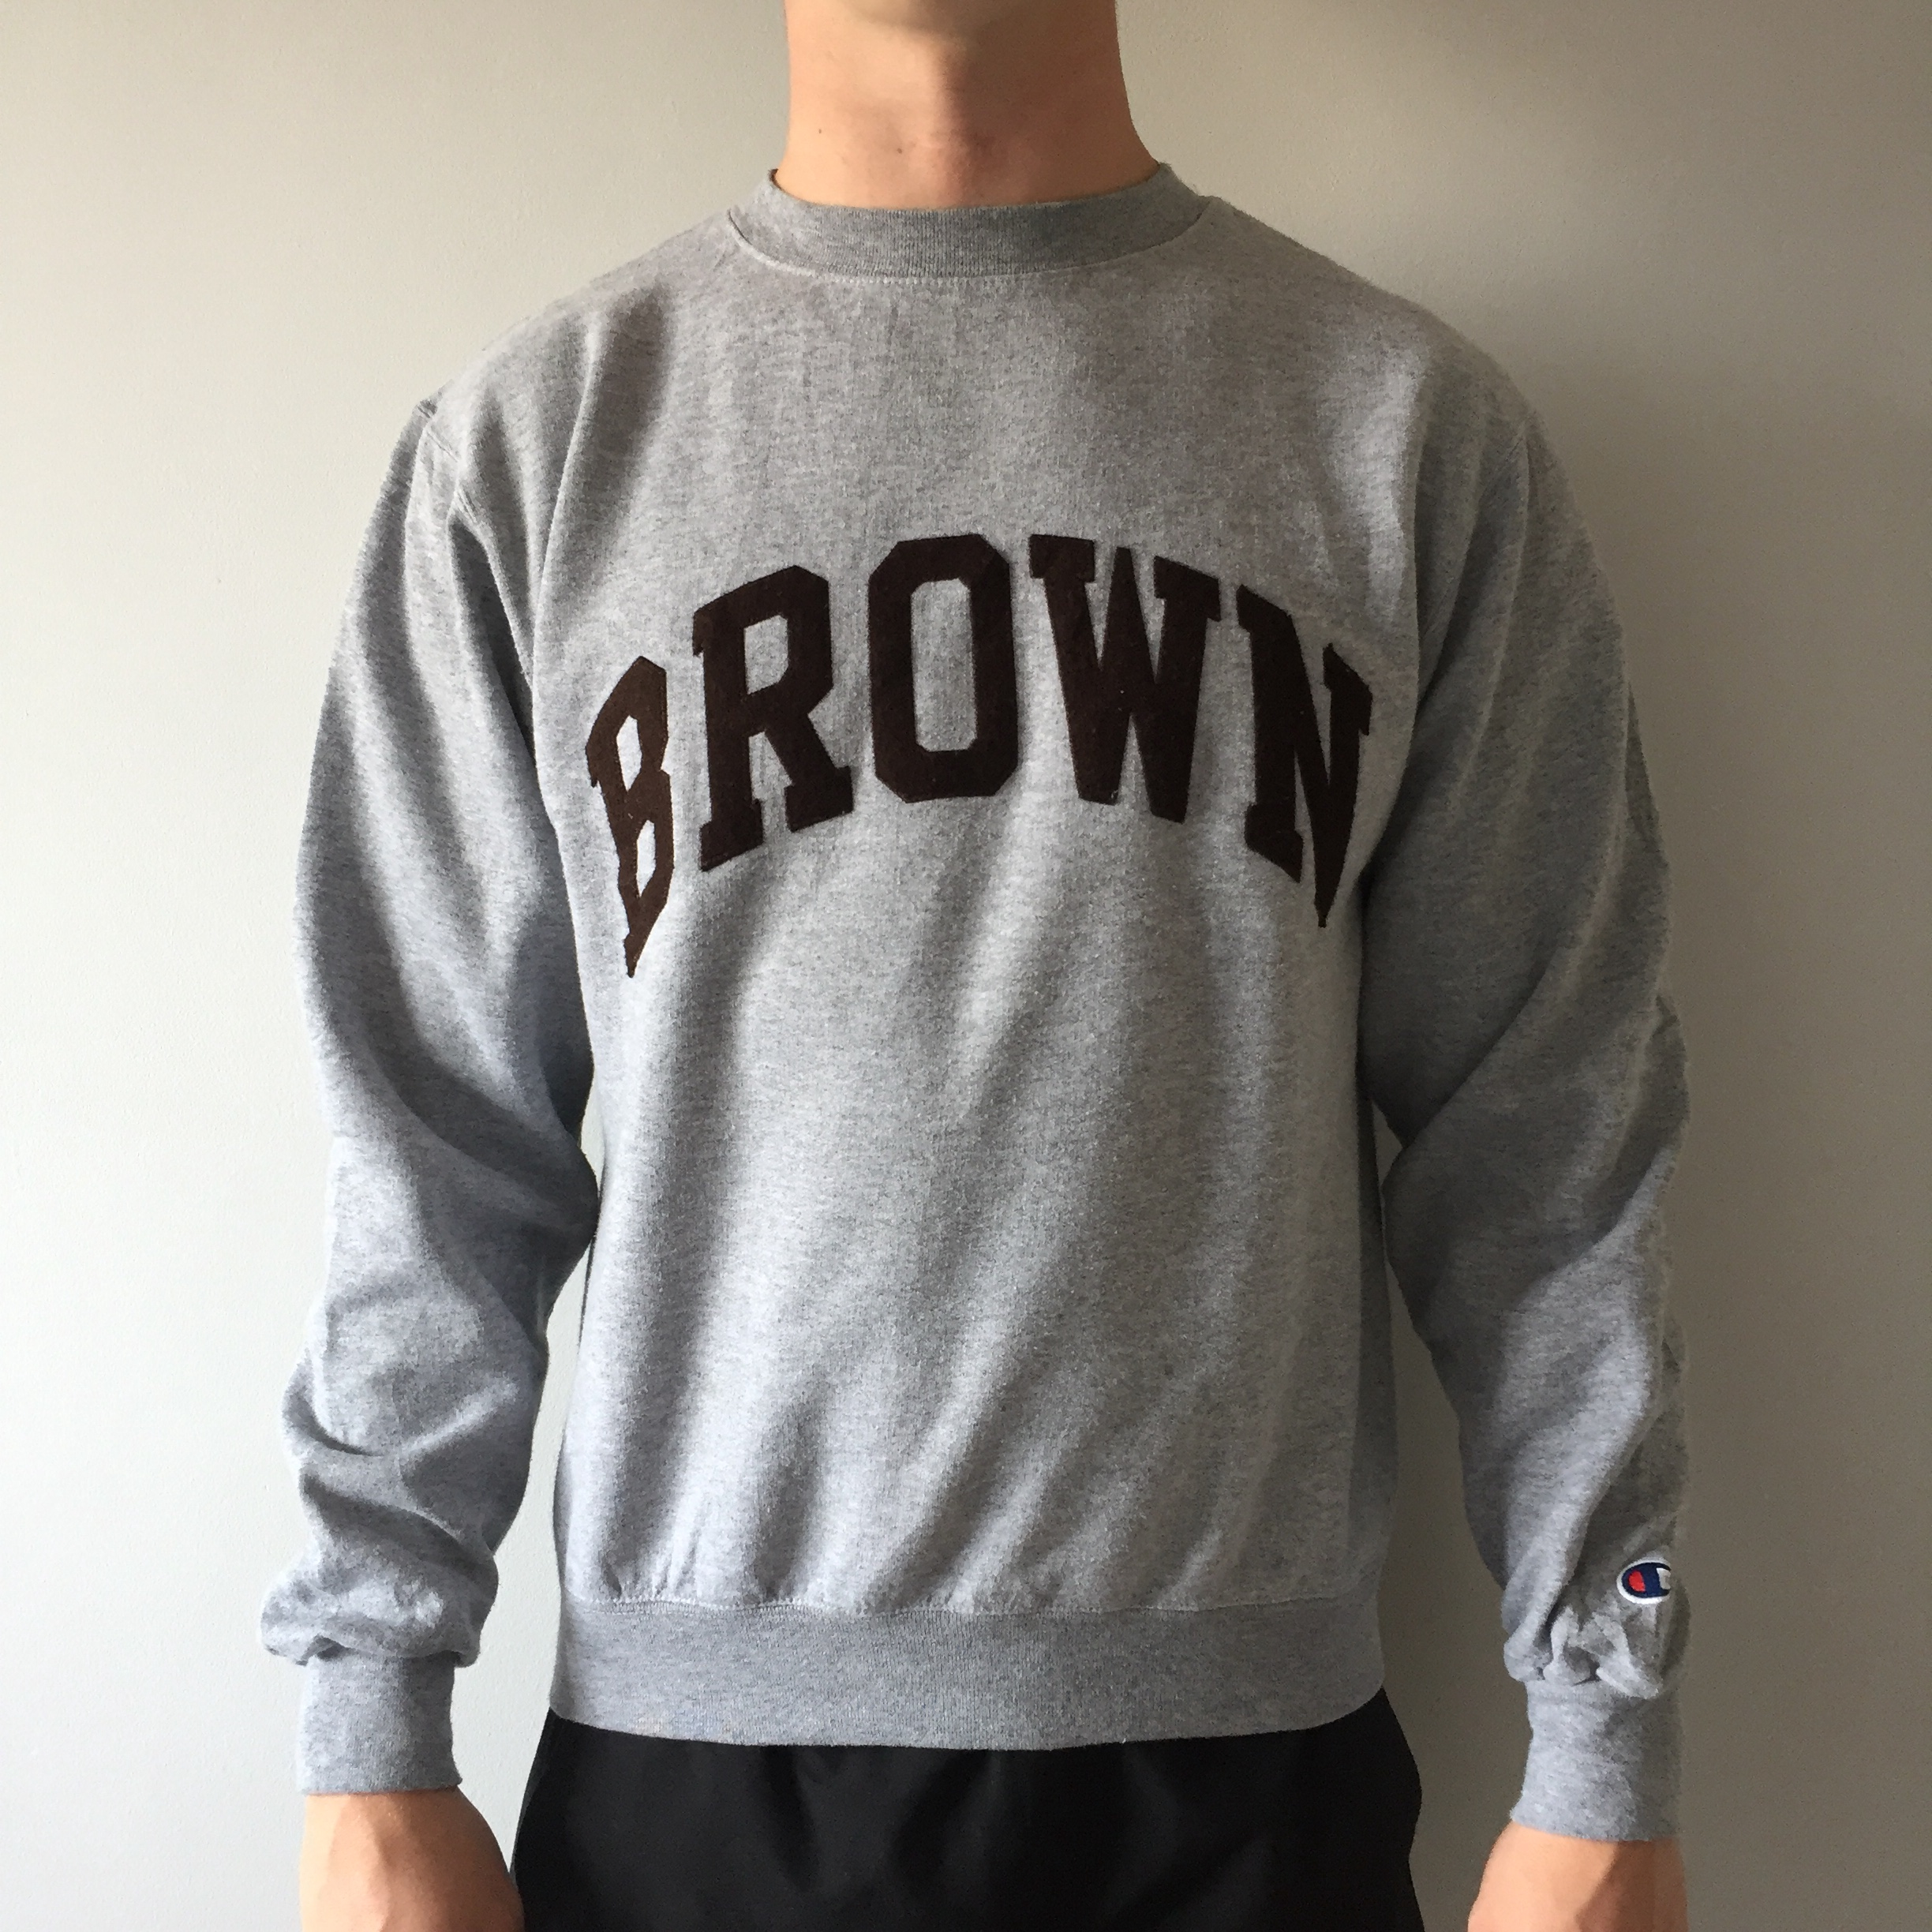 69c9e4c88e6d Vintage men's champion BROWN University crewneck... - Depop